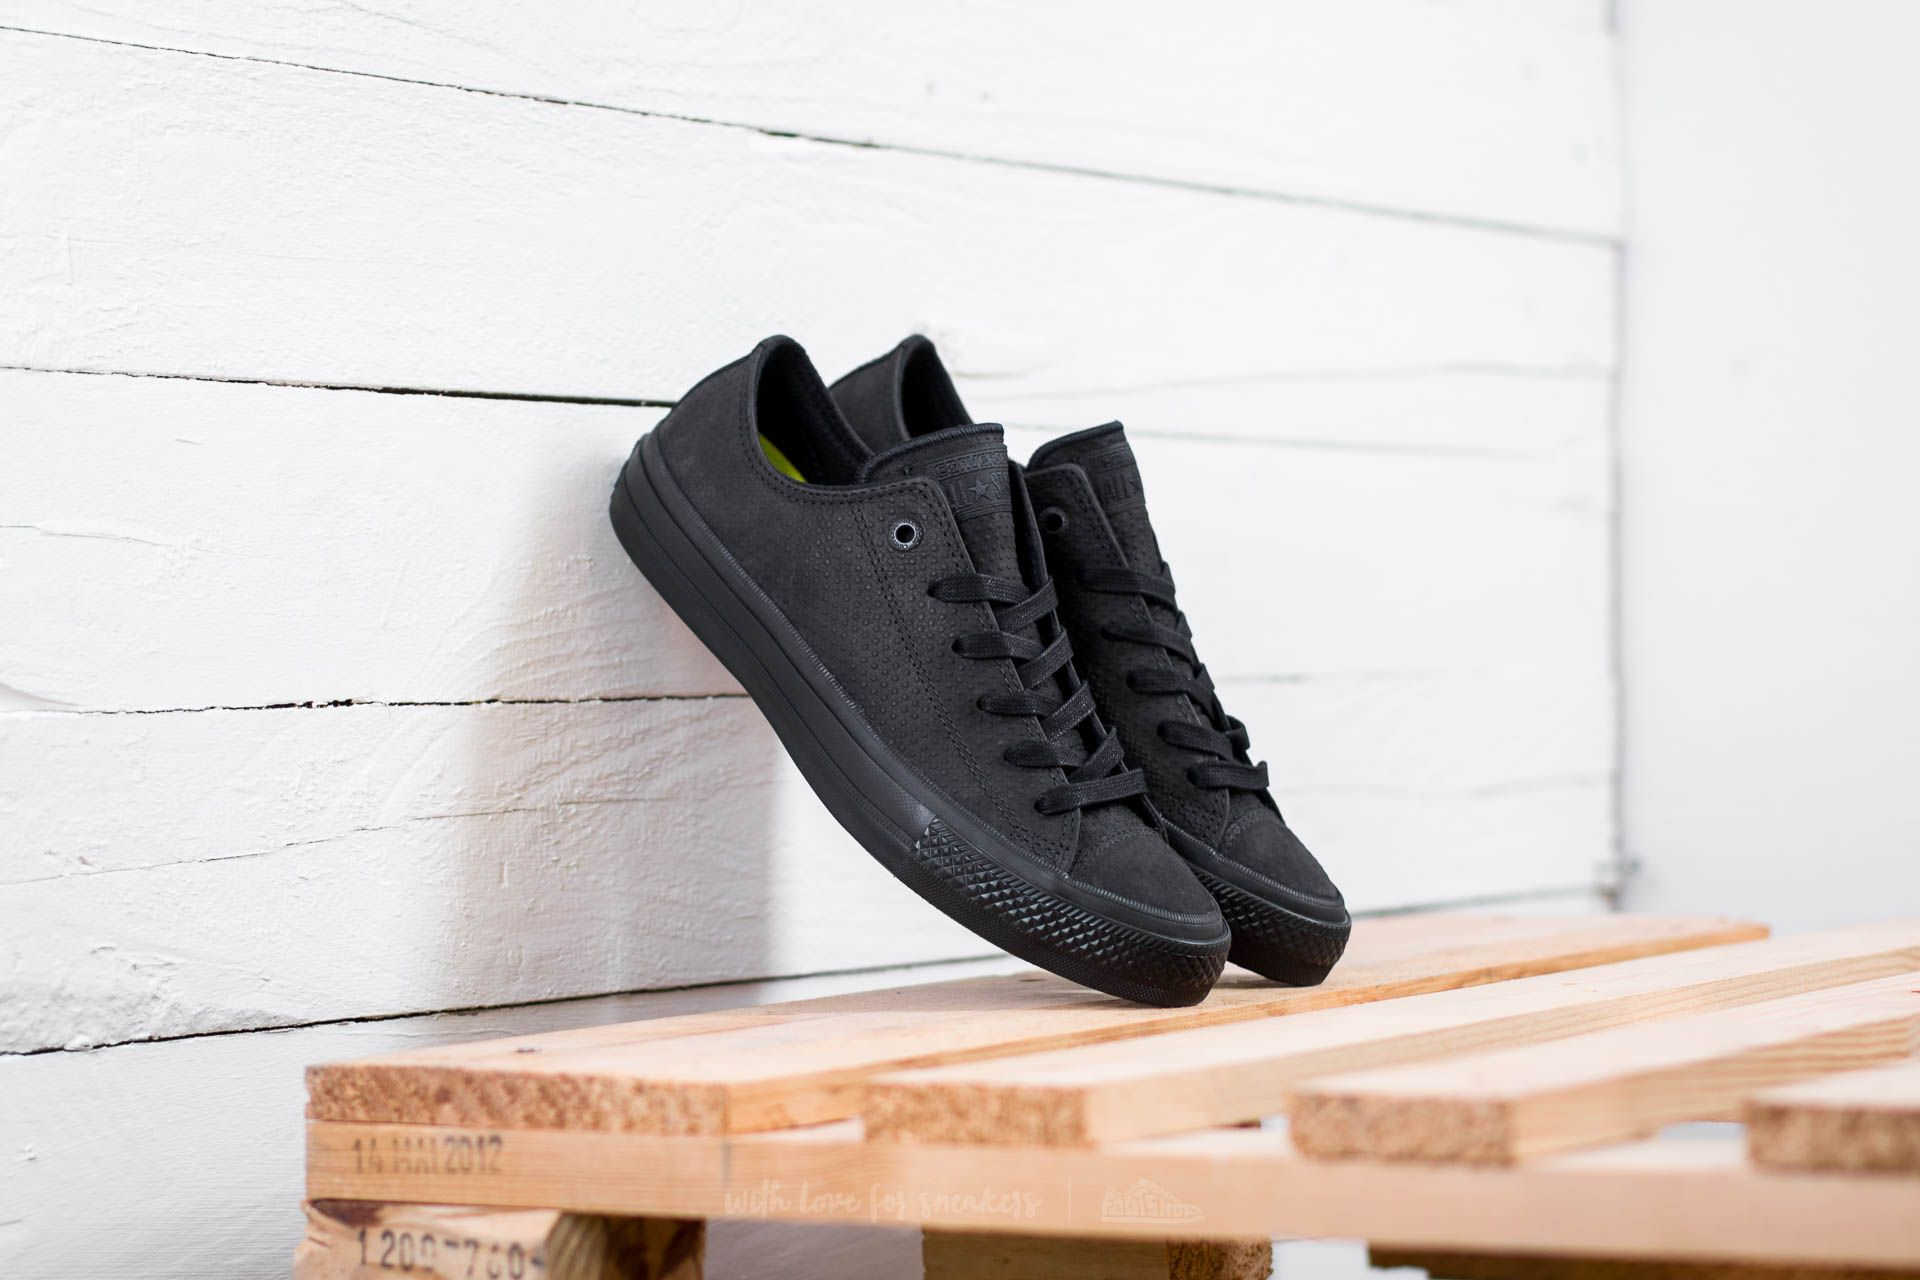 Converse Chuck Taylor AS II OX Black/ Black/ Gum